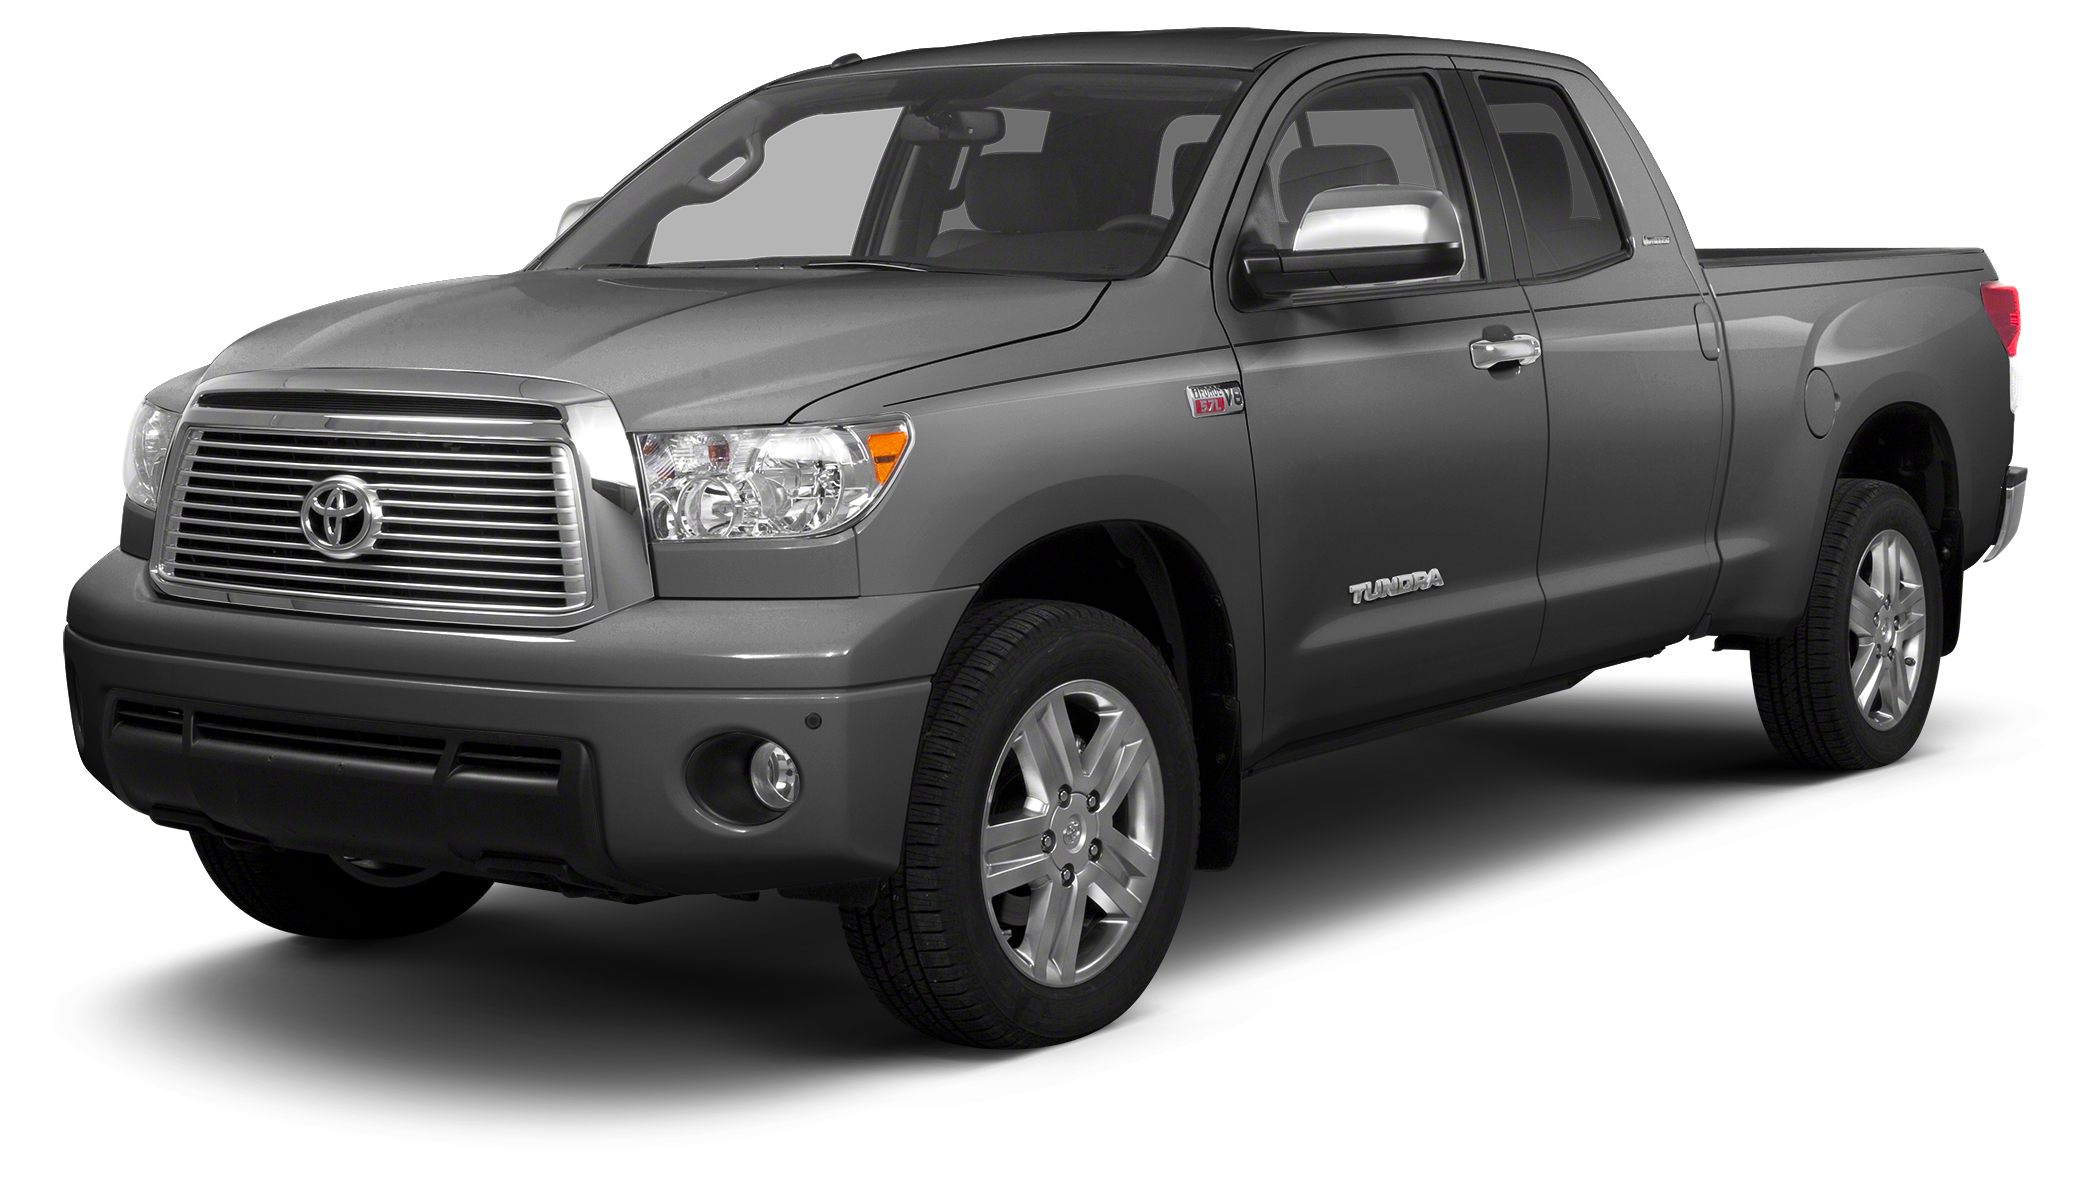 2013 Toyota Tundra Grade Tundra trim MAGNETIC GRAY METALLIC exterior and BLACK interior ONLY 34